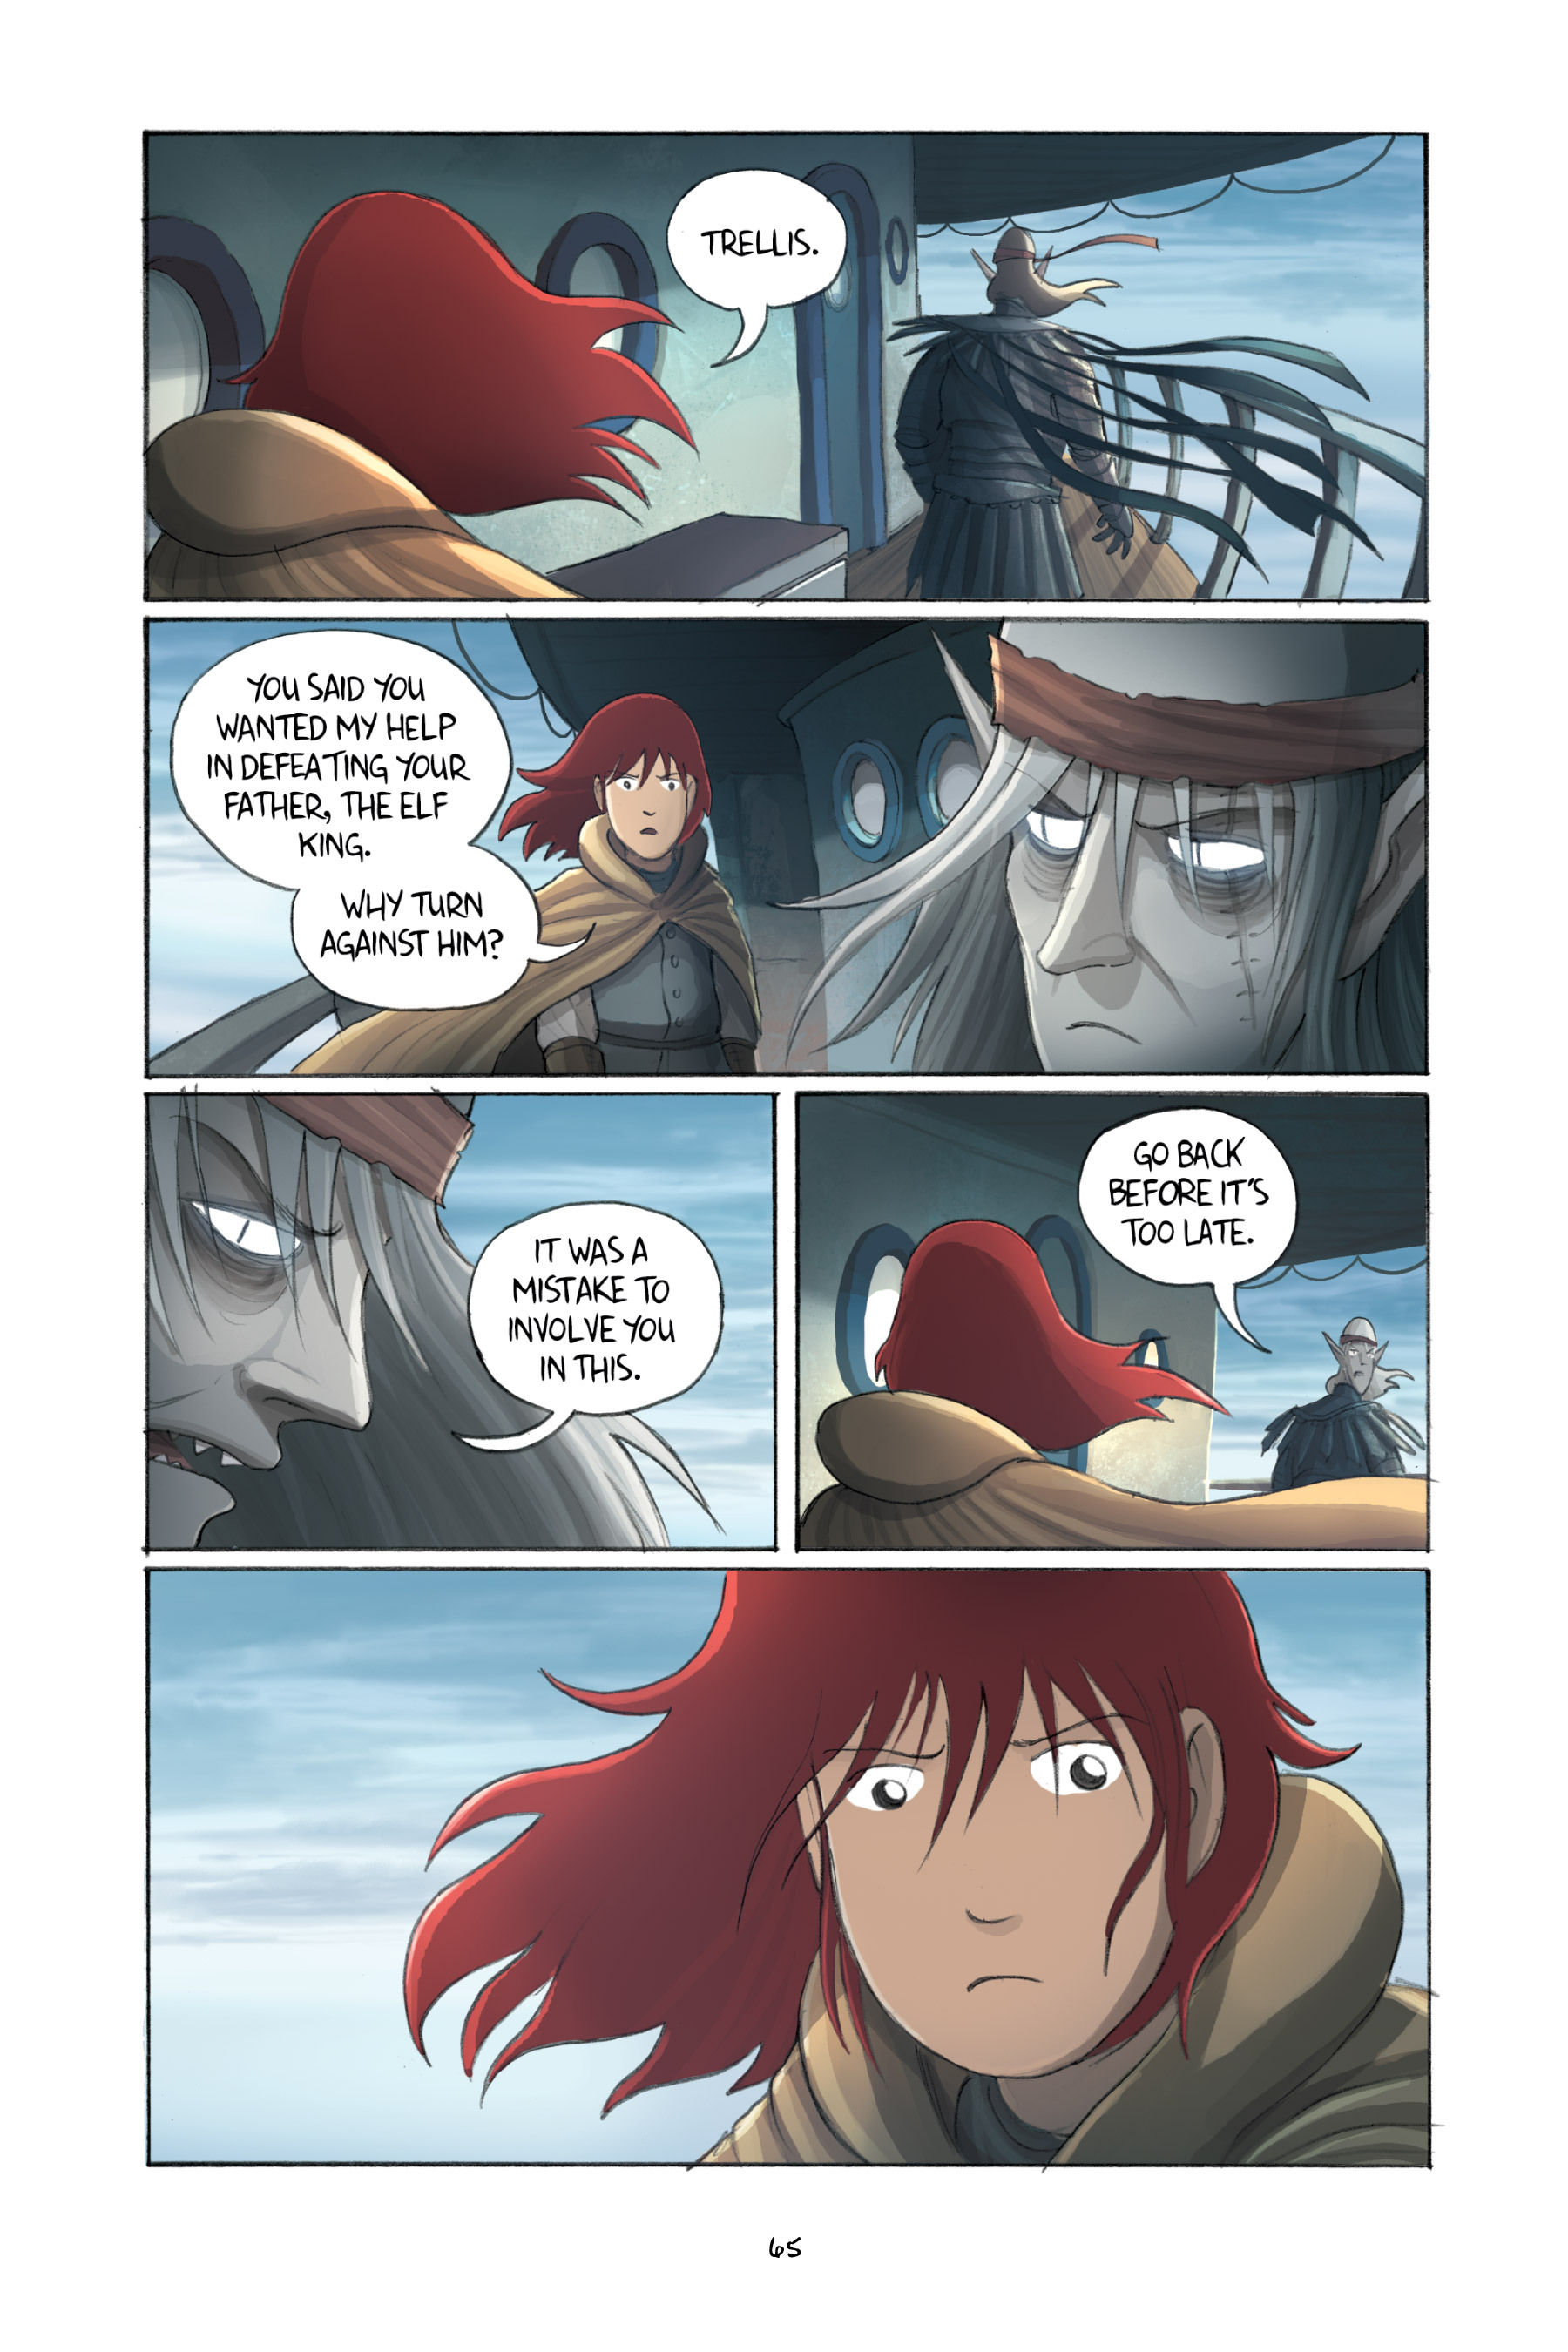 Read online Amulet comic -  Issue #3 - 63